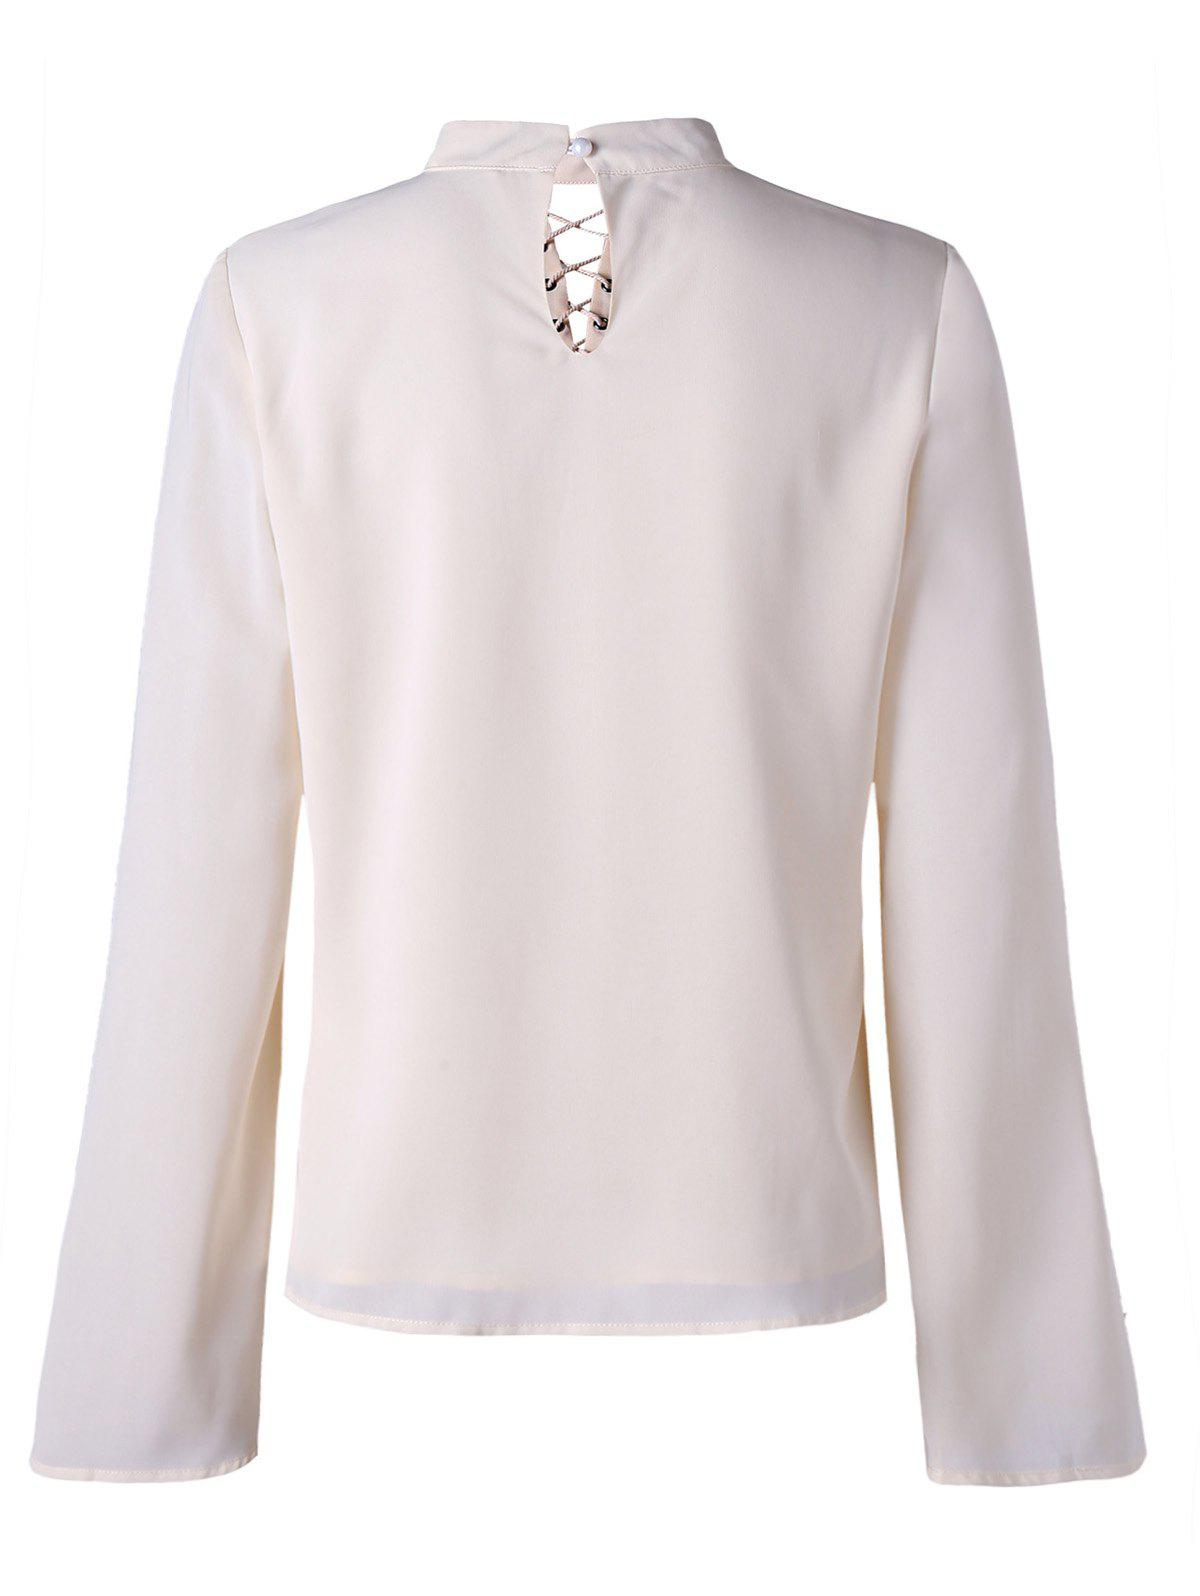 Mock Neck Lace Up Blouse - OFF WHITE XL